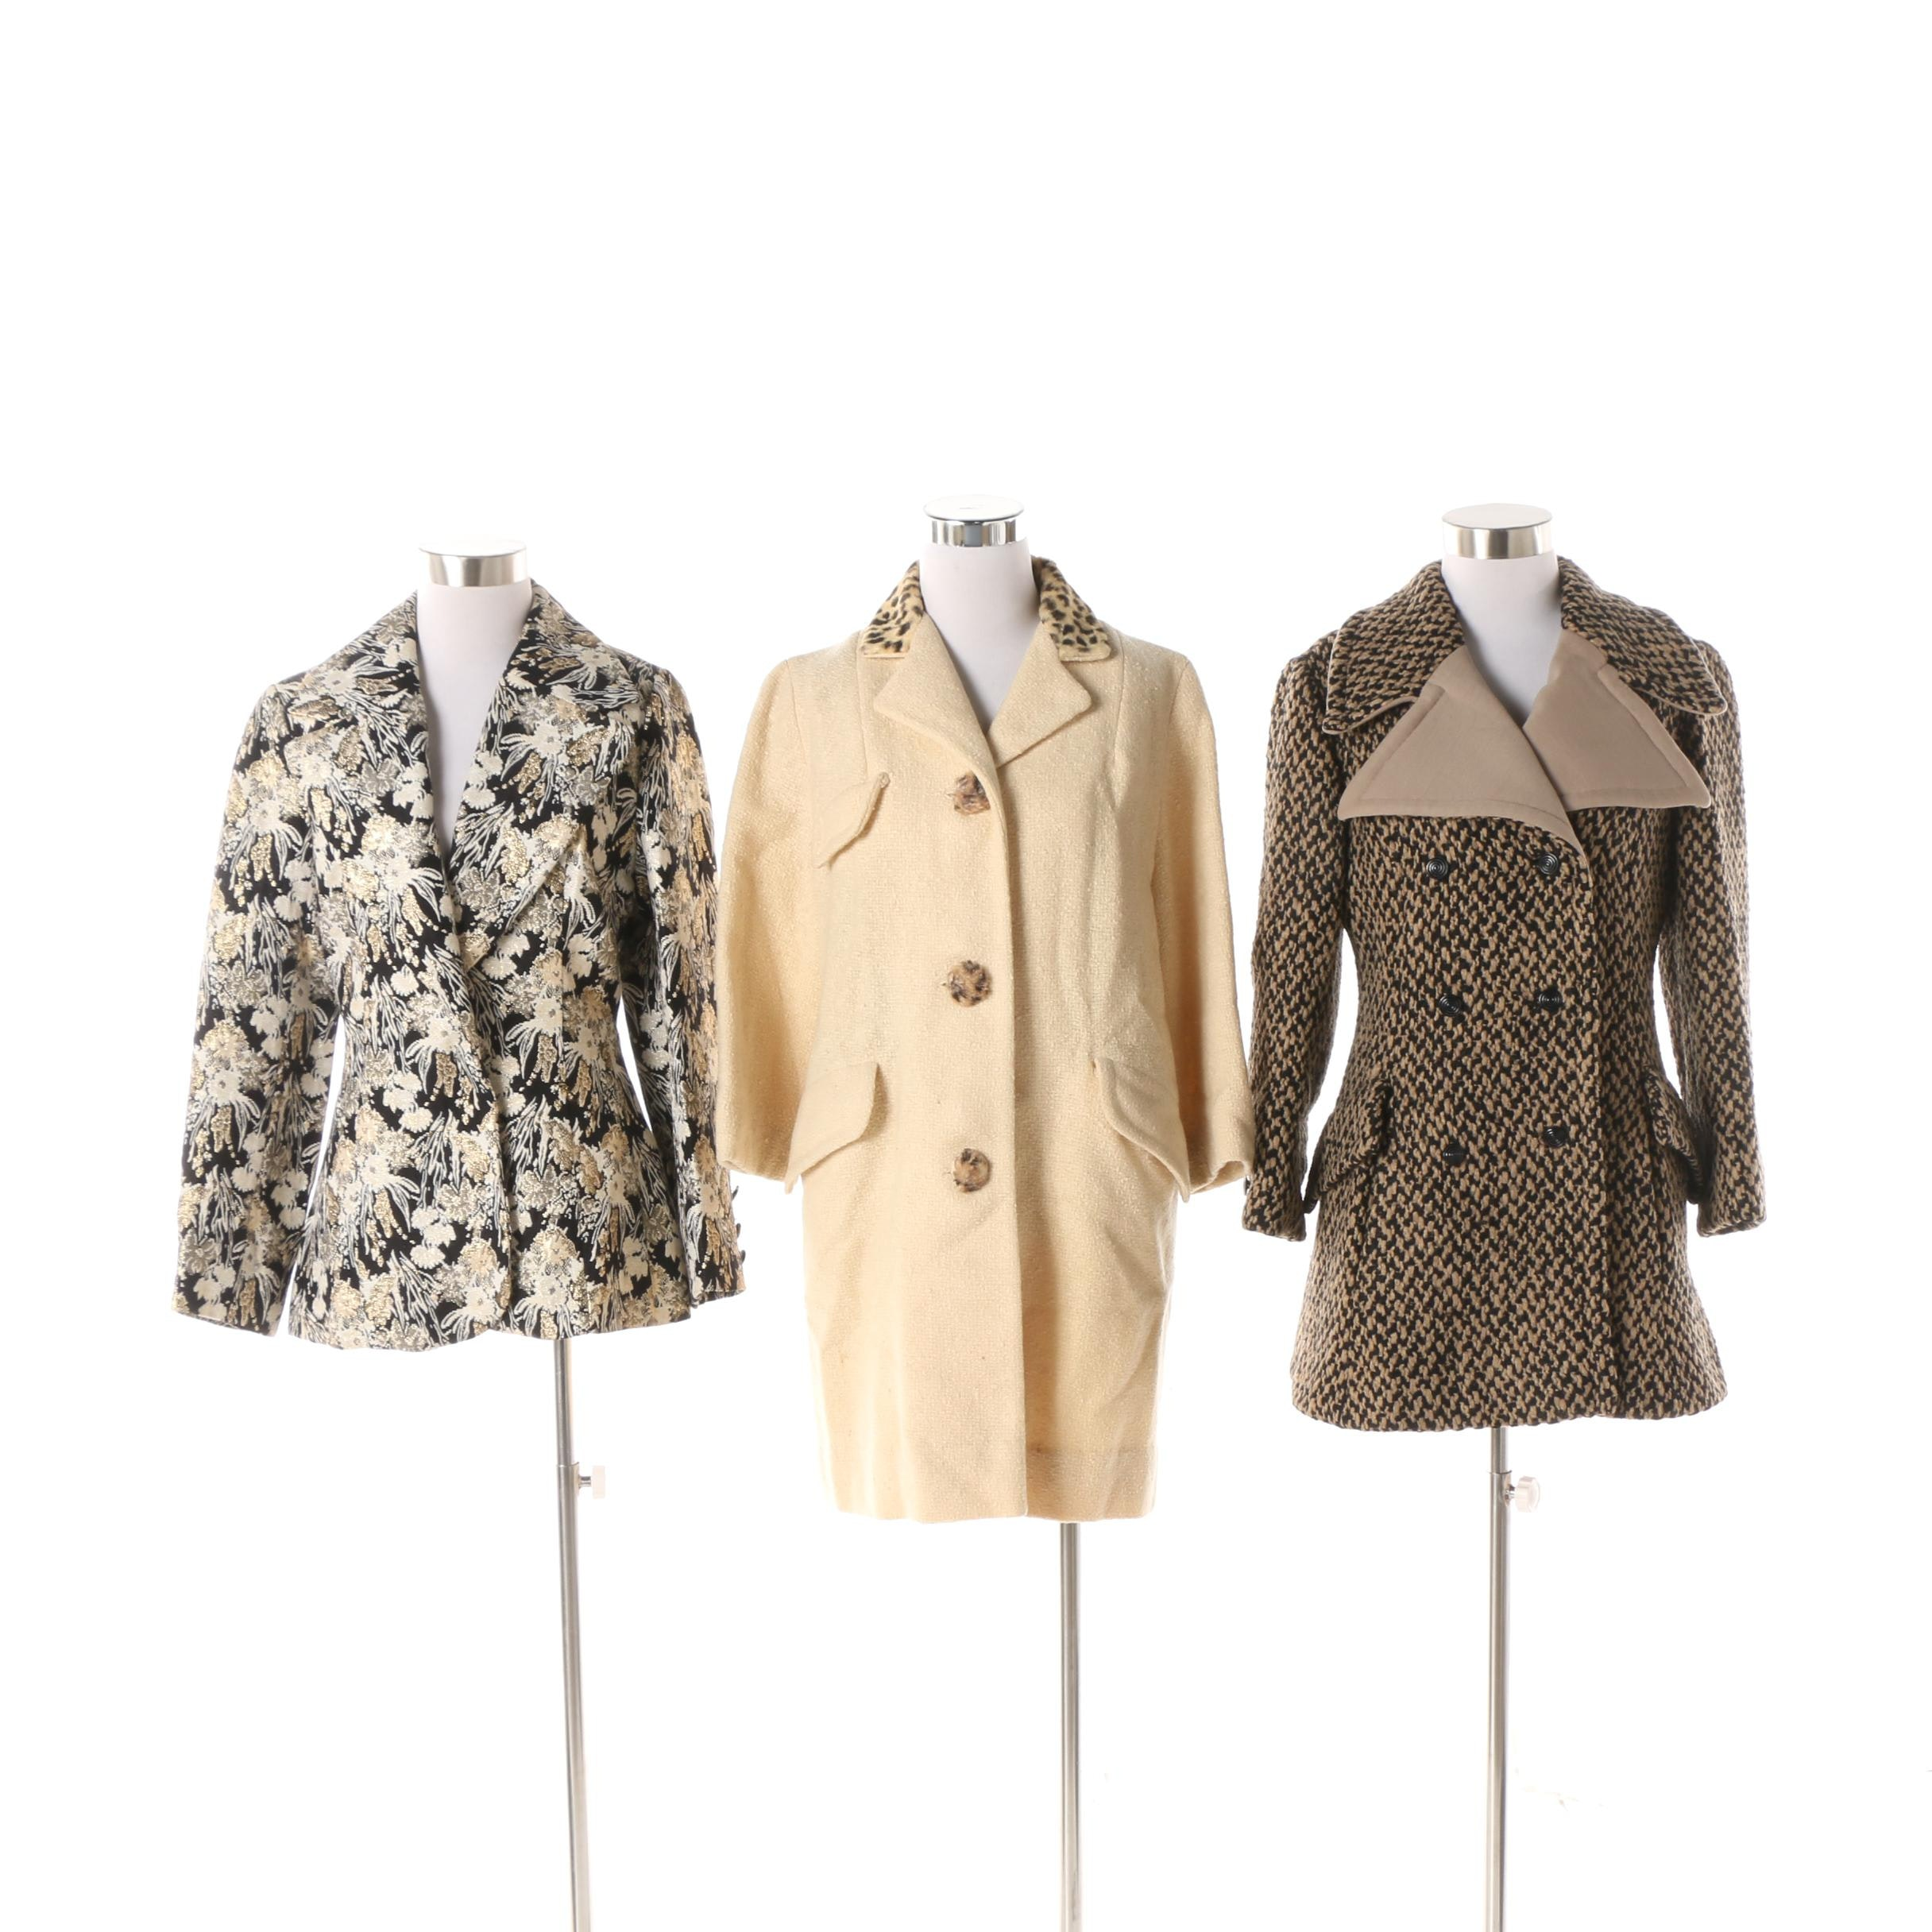 Women's Vintage Jackets including Lilli Ann